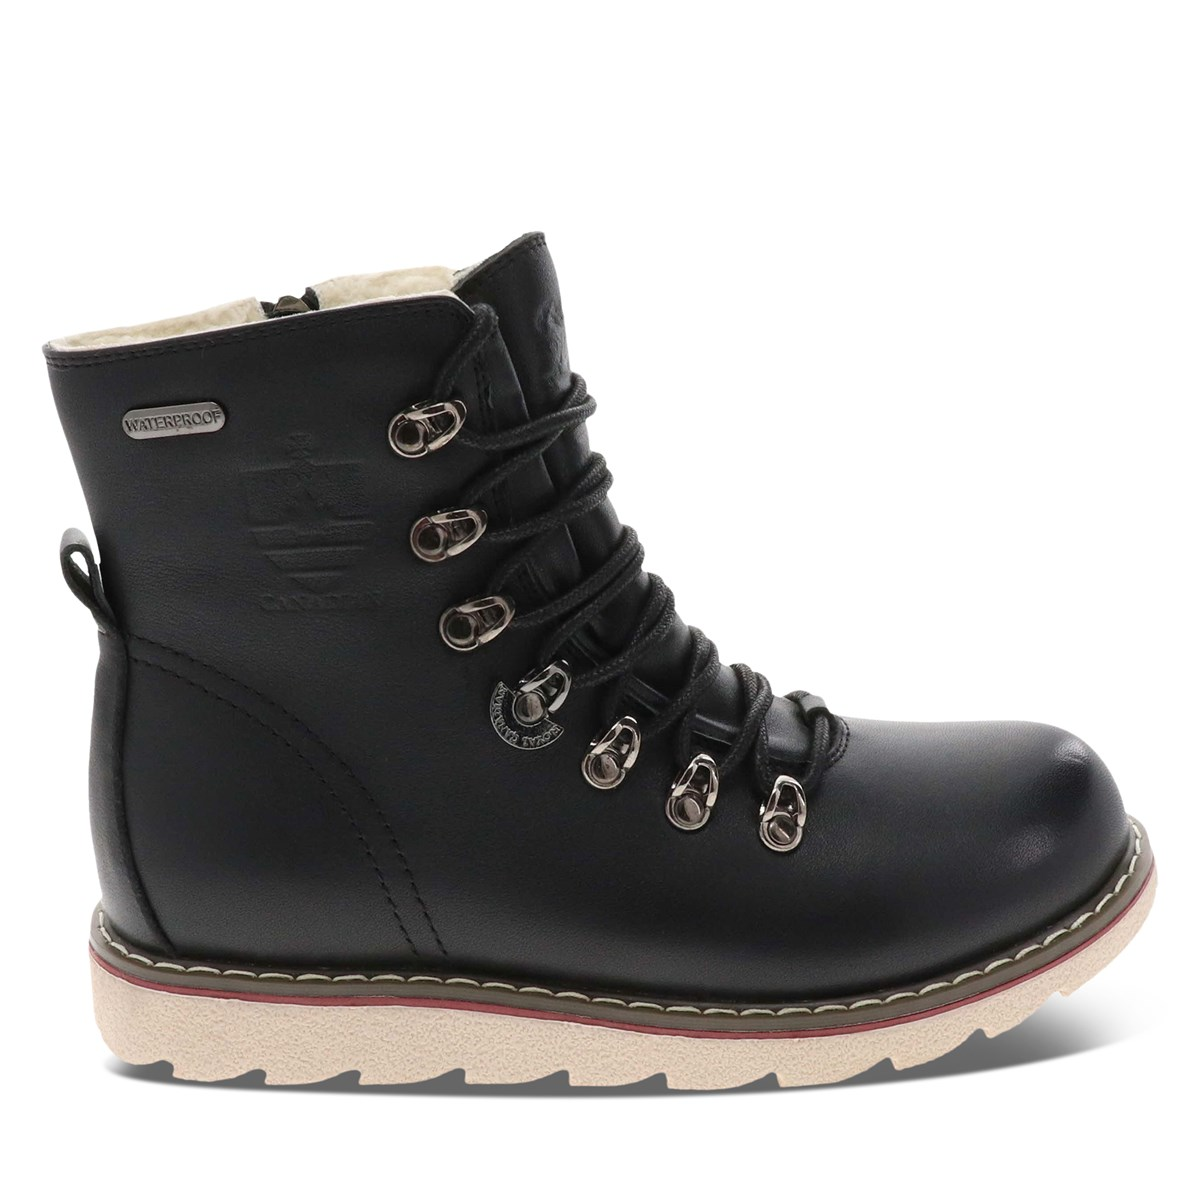 Women's Caledon Waterproof Boots in Black